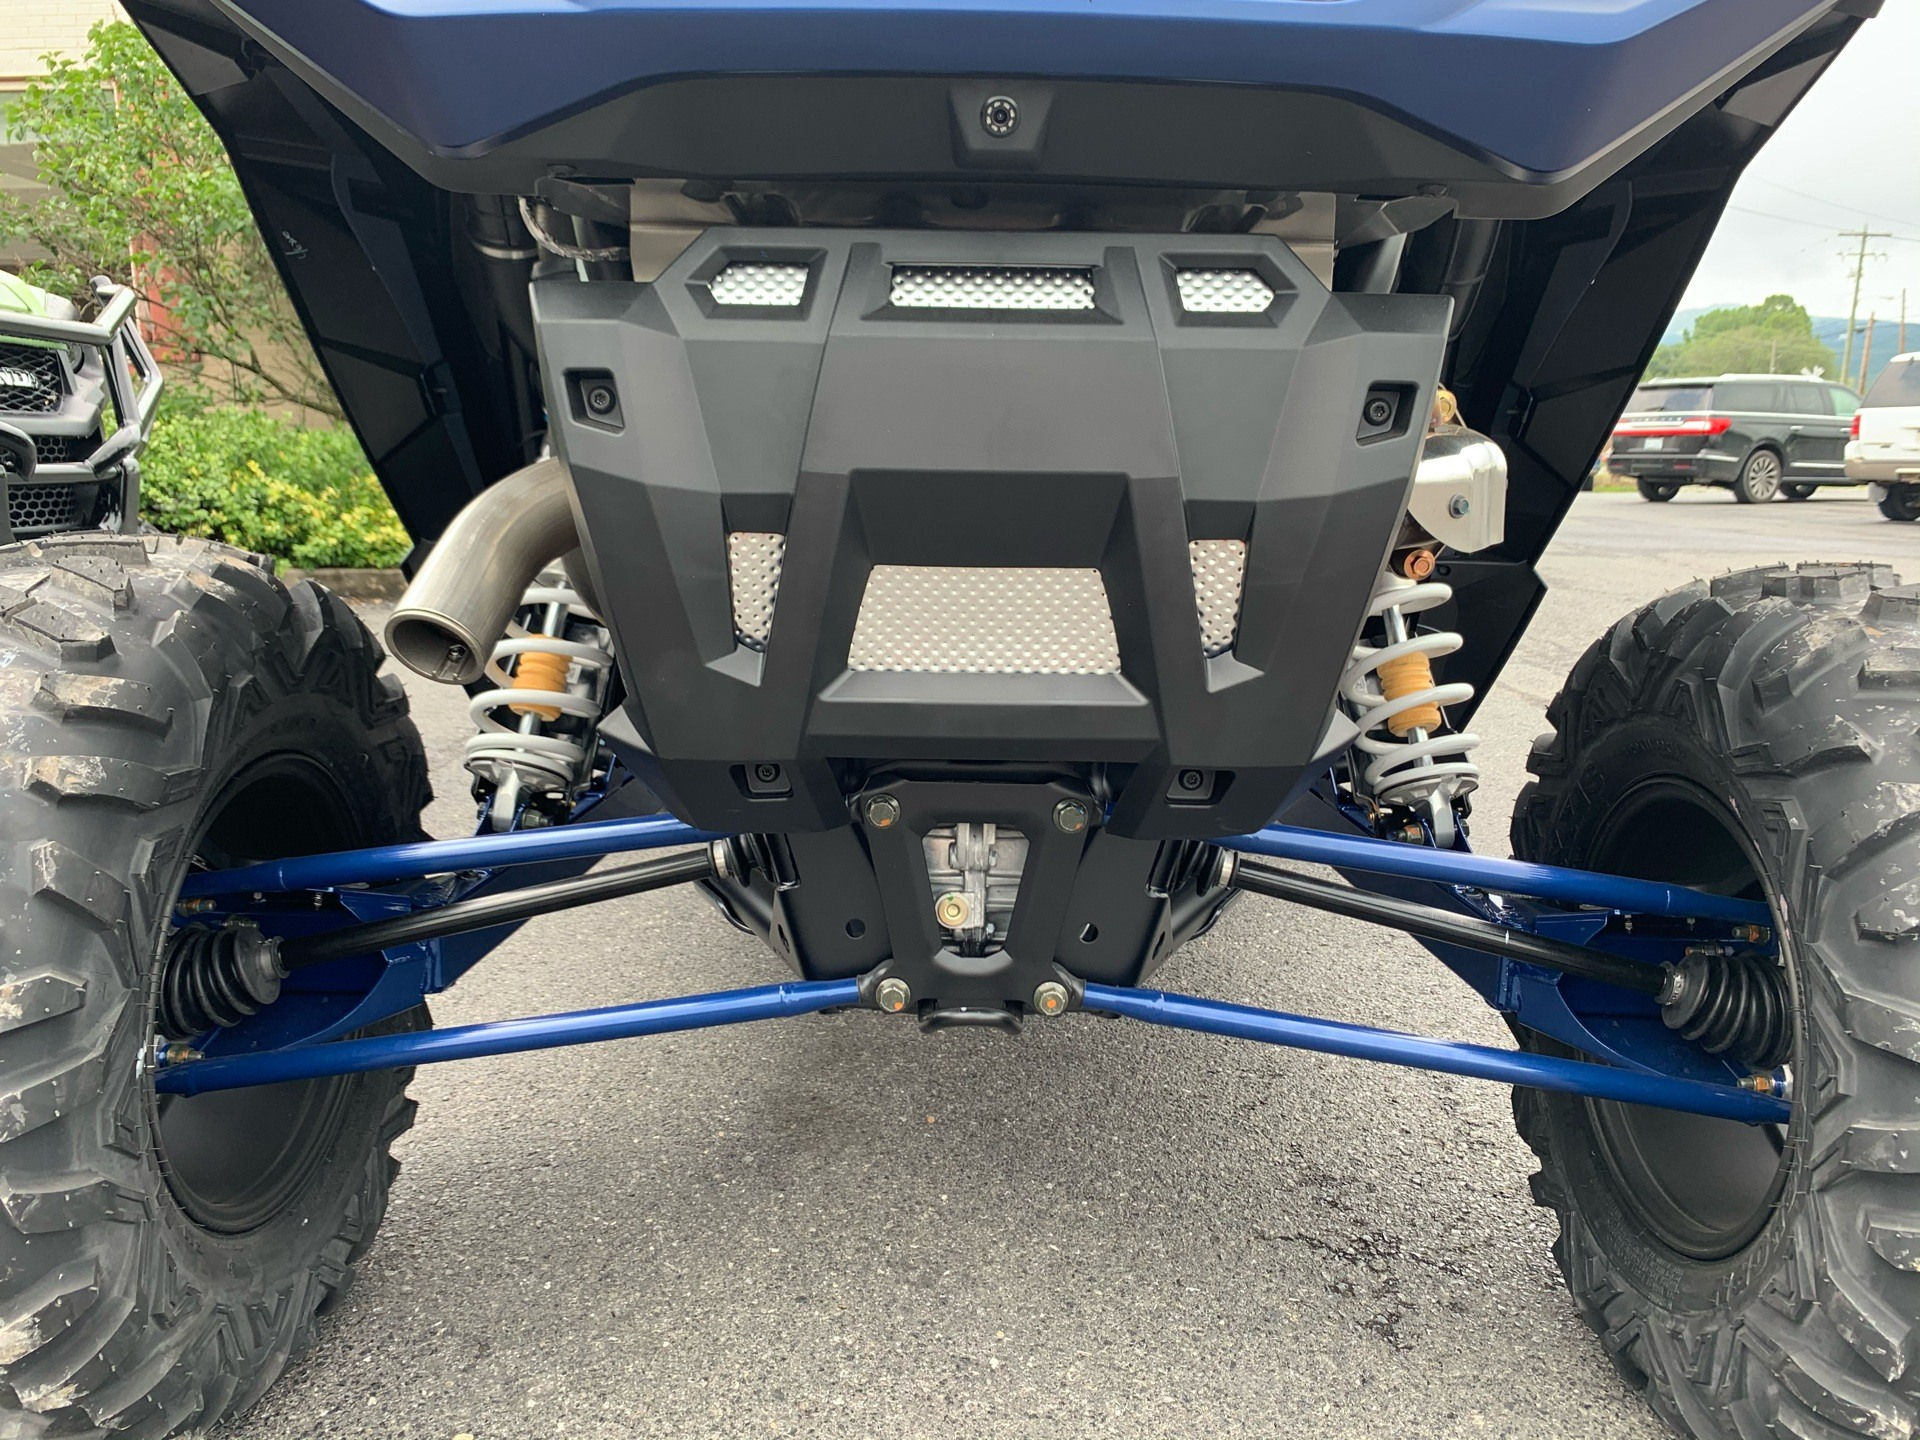 2021 Polaris RZR XP 1000 Premium in Petersburg, West Virginia - Photo 6